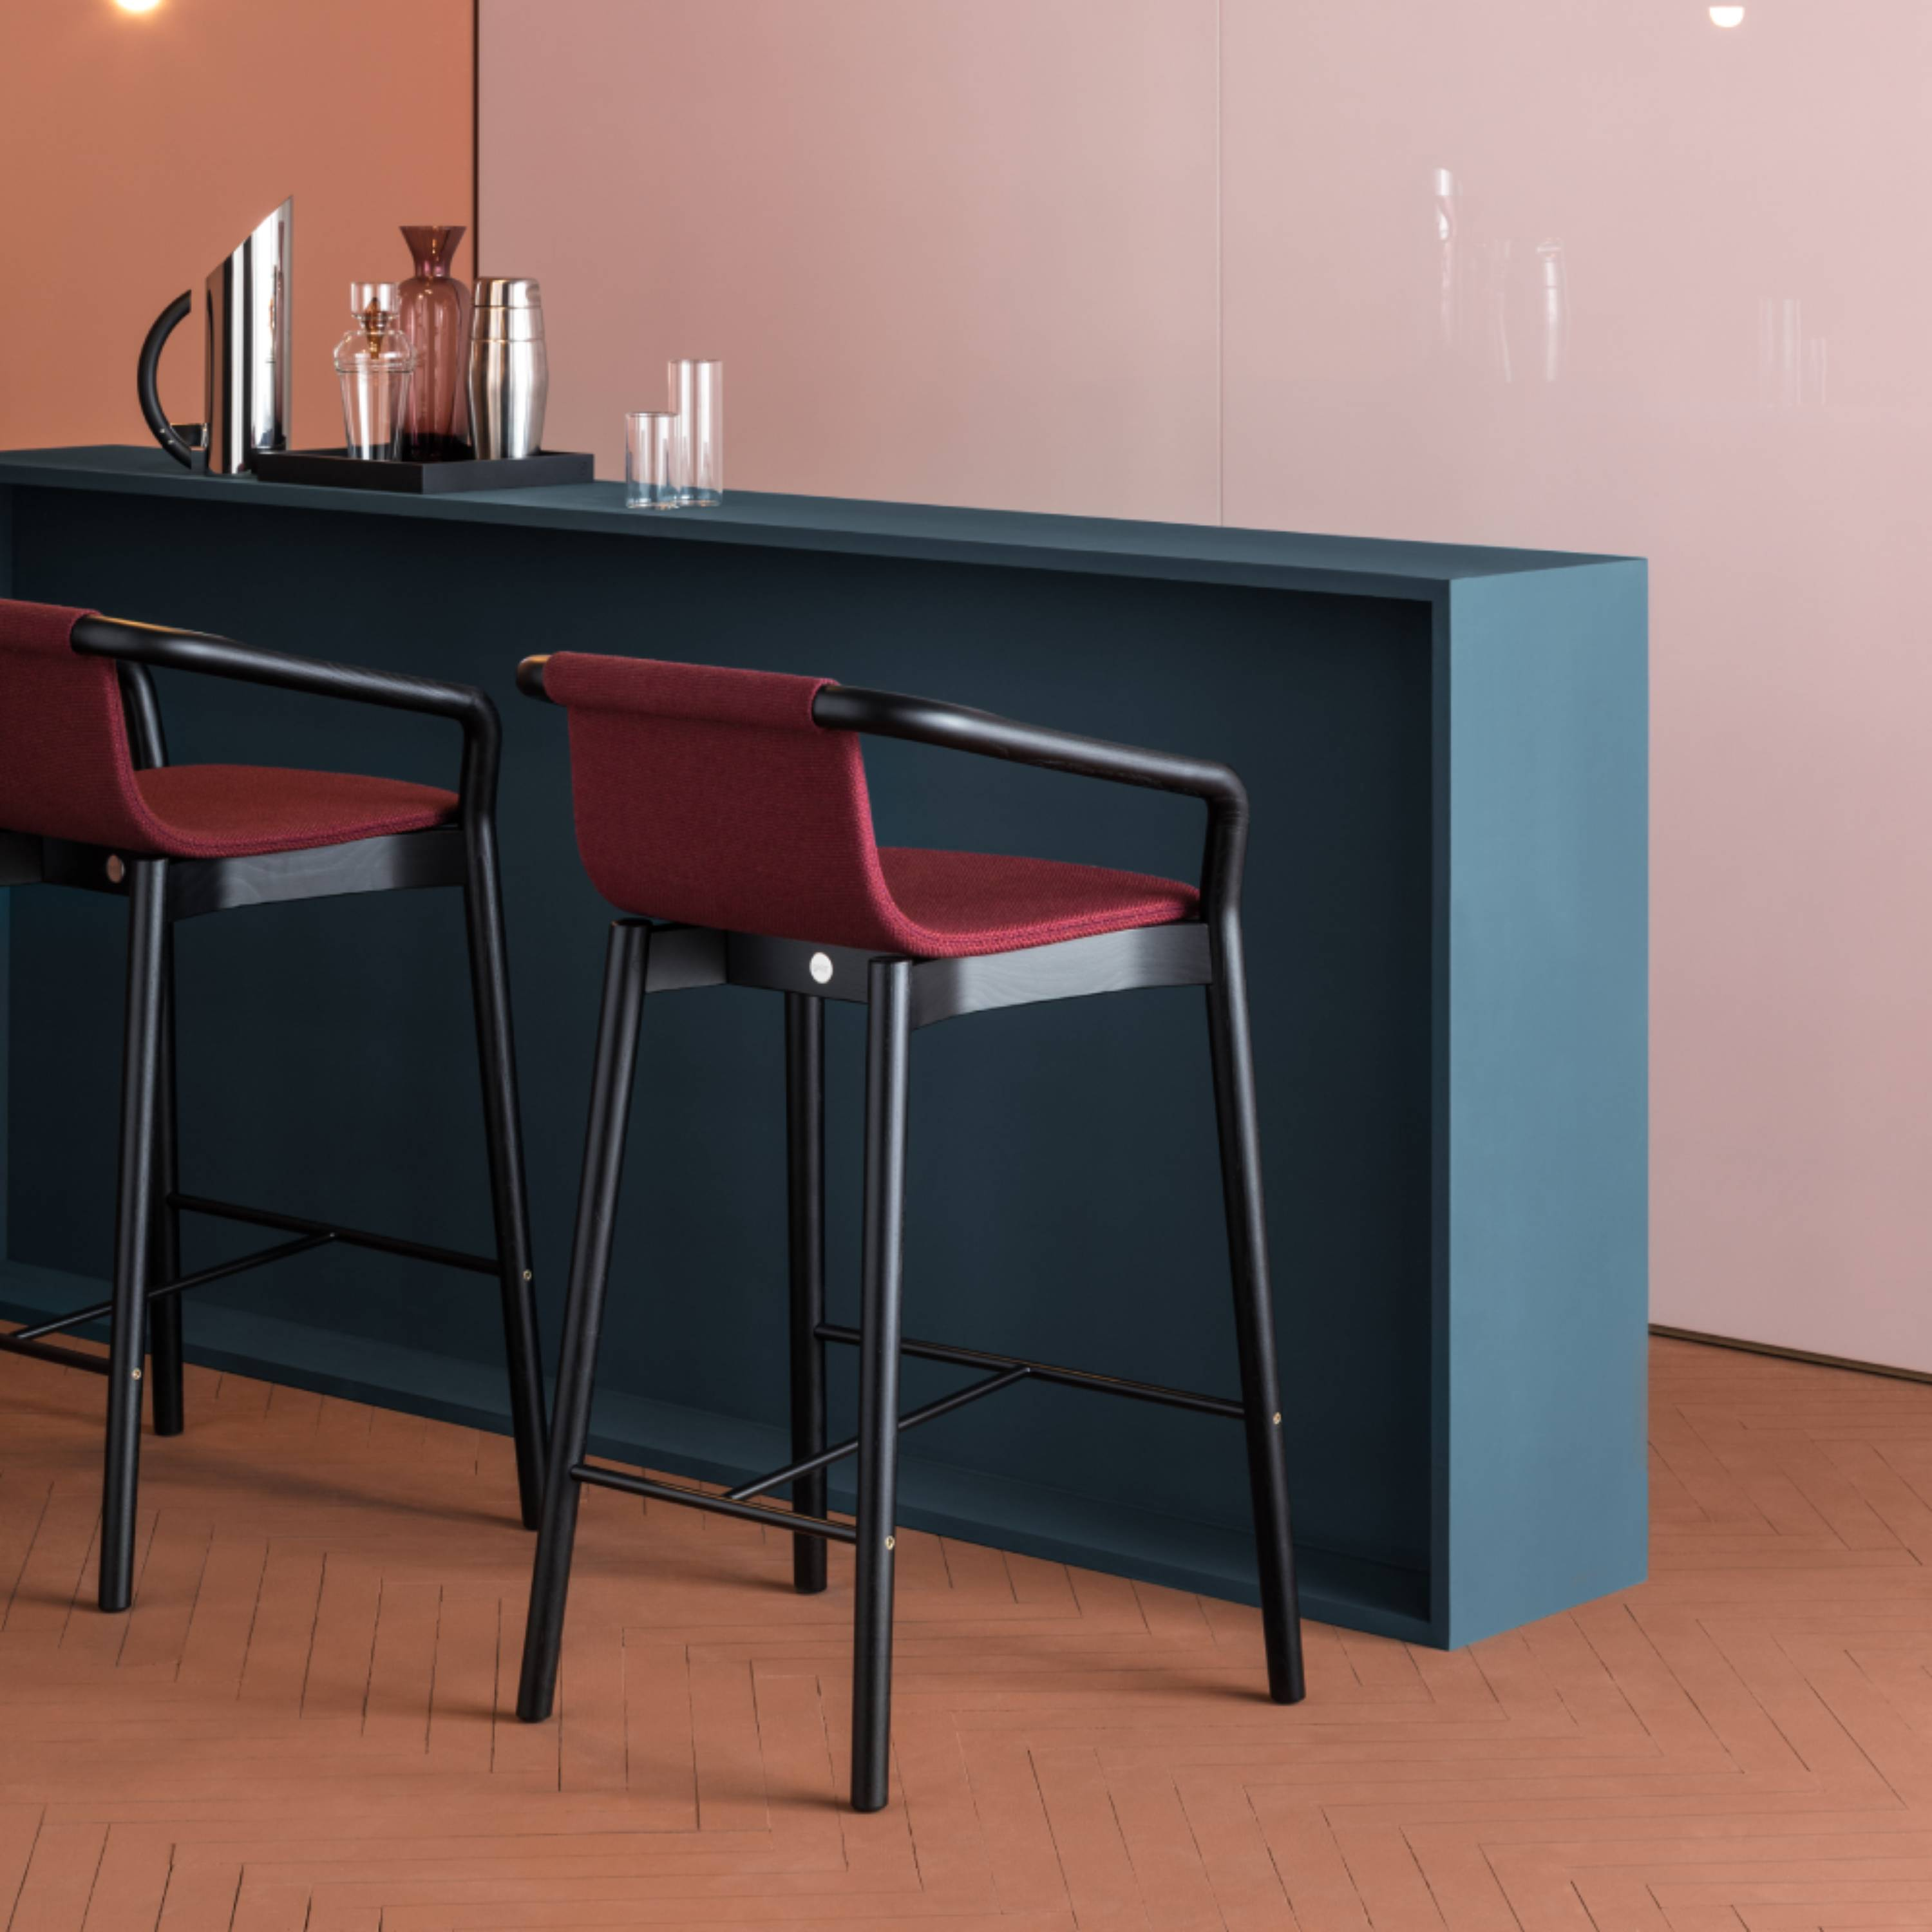 Thomas Bar Stool: Upholstered